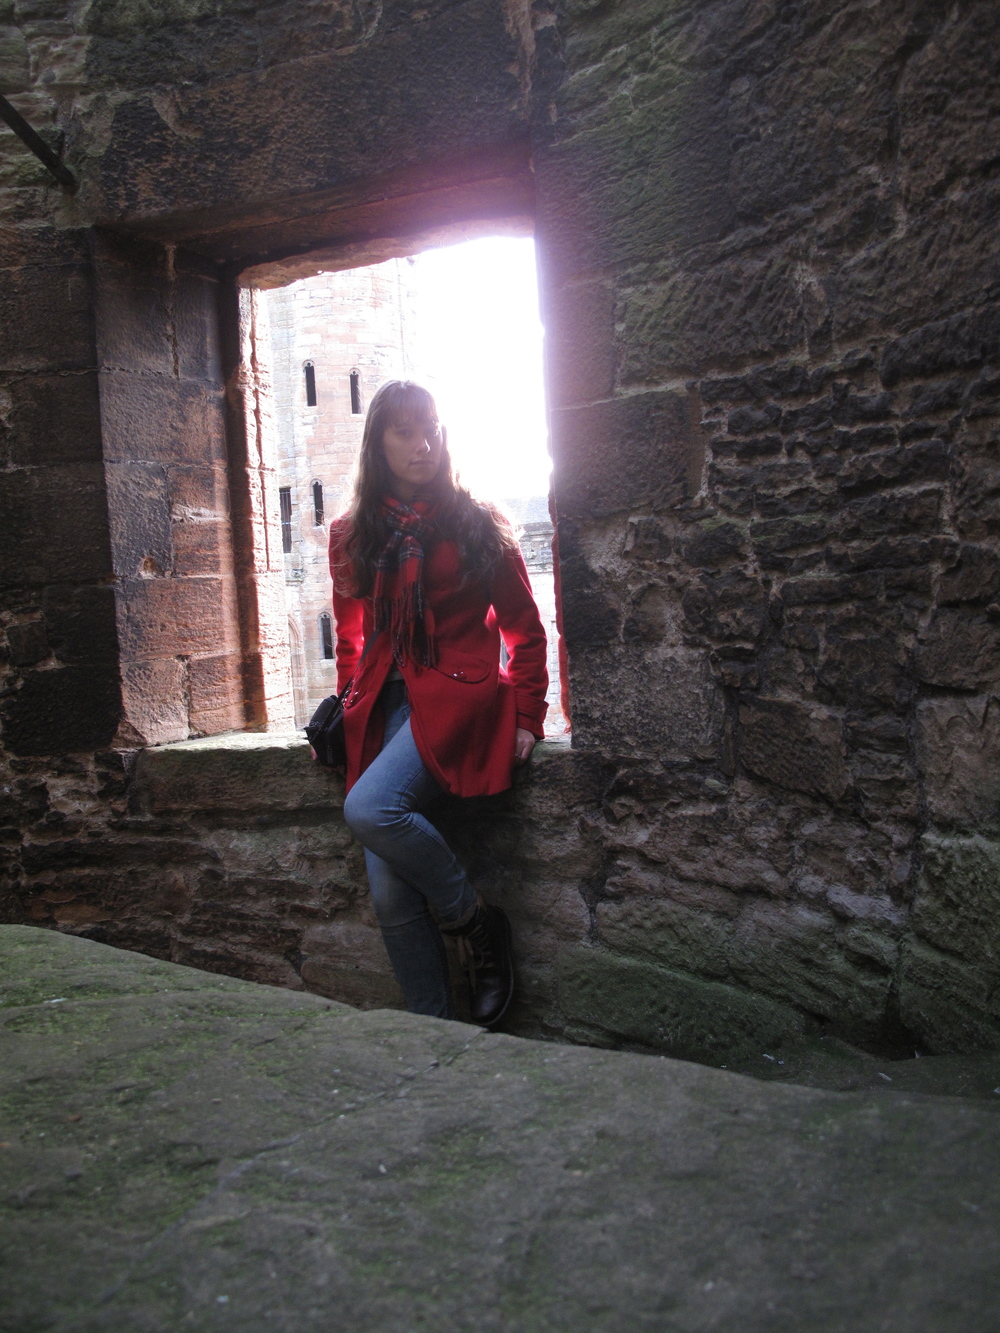 Sitting on a window in the castle tower.